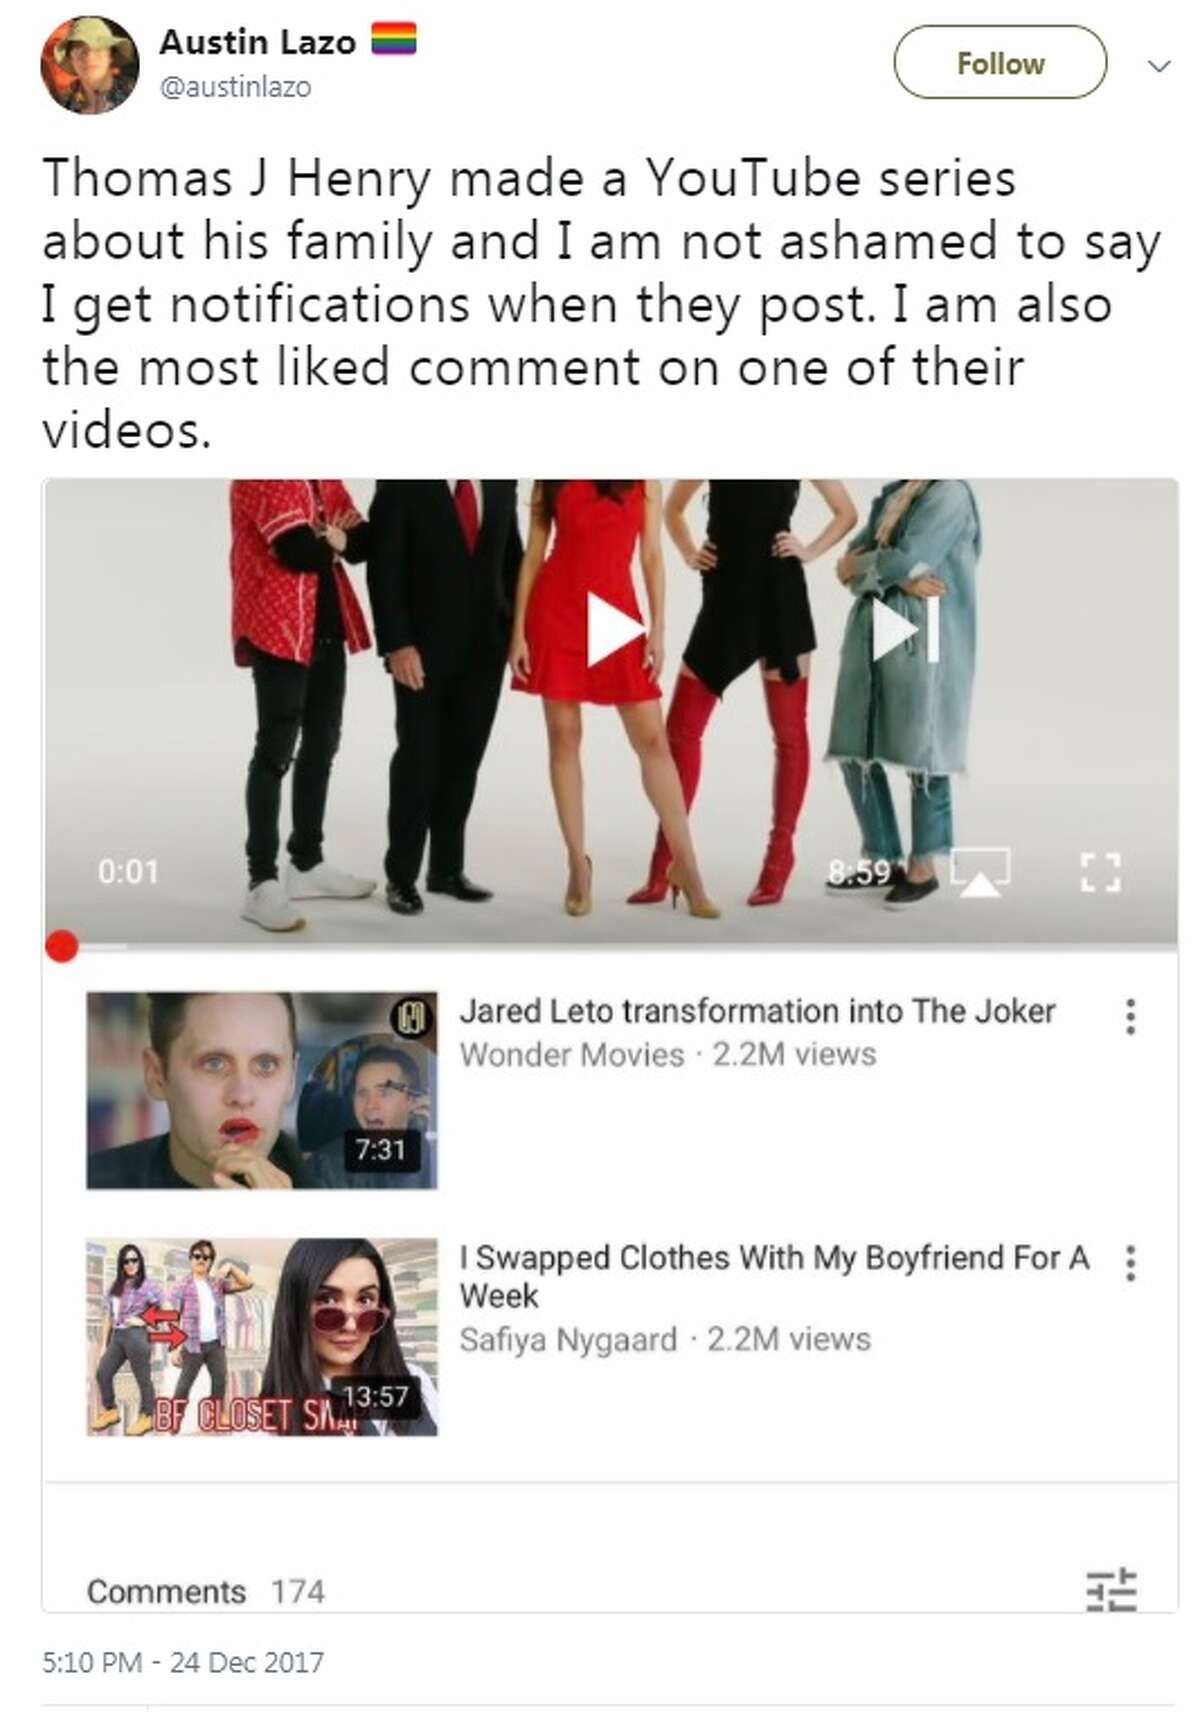 @austinlazo: Thomas J Henry made a YouTube series about his family and I am not ashamed to say I get notifications when they post. I am also the most liked comment on one of their videos.